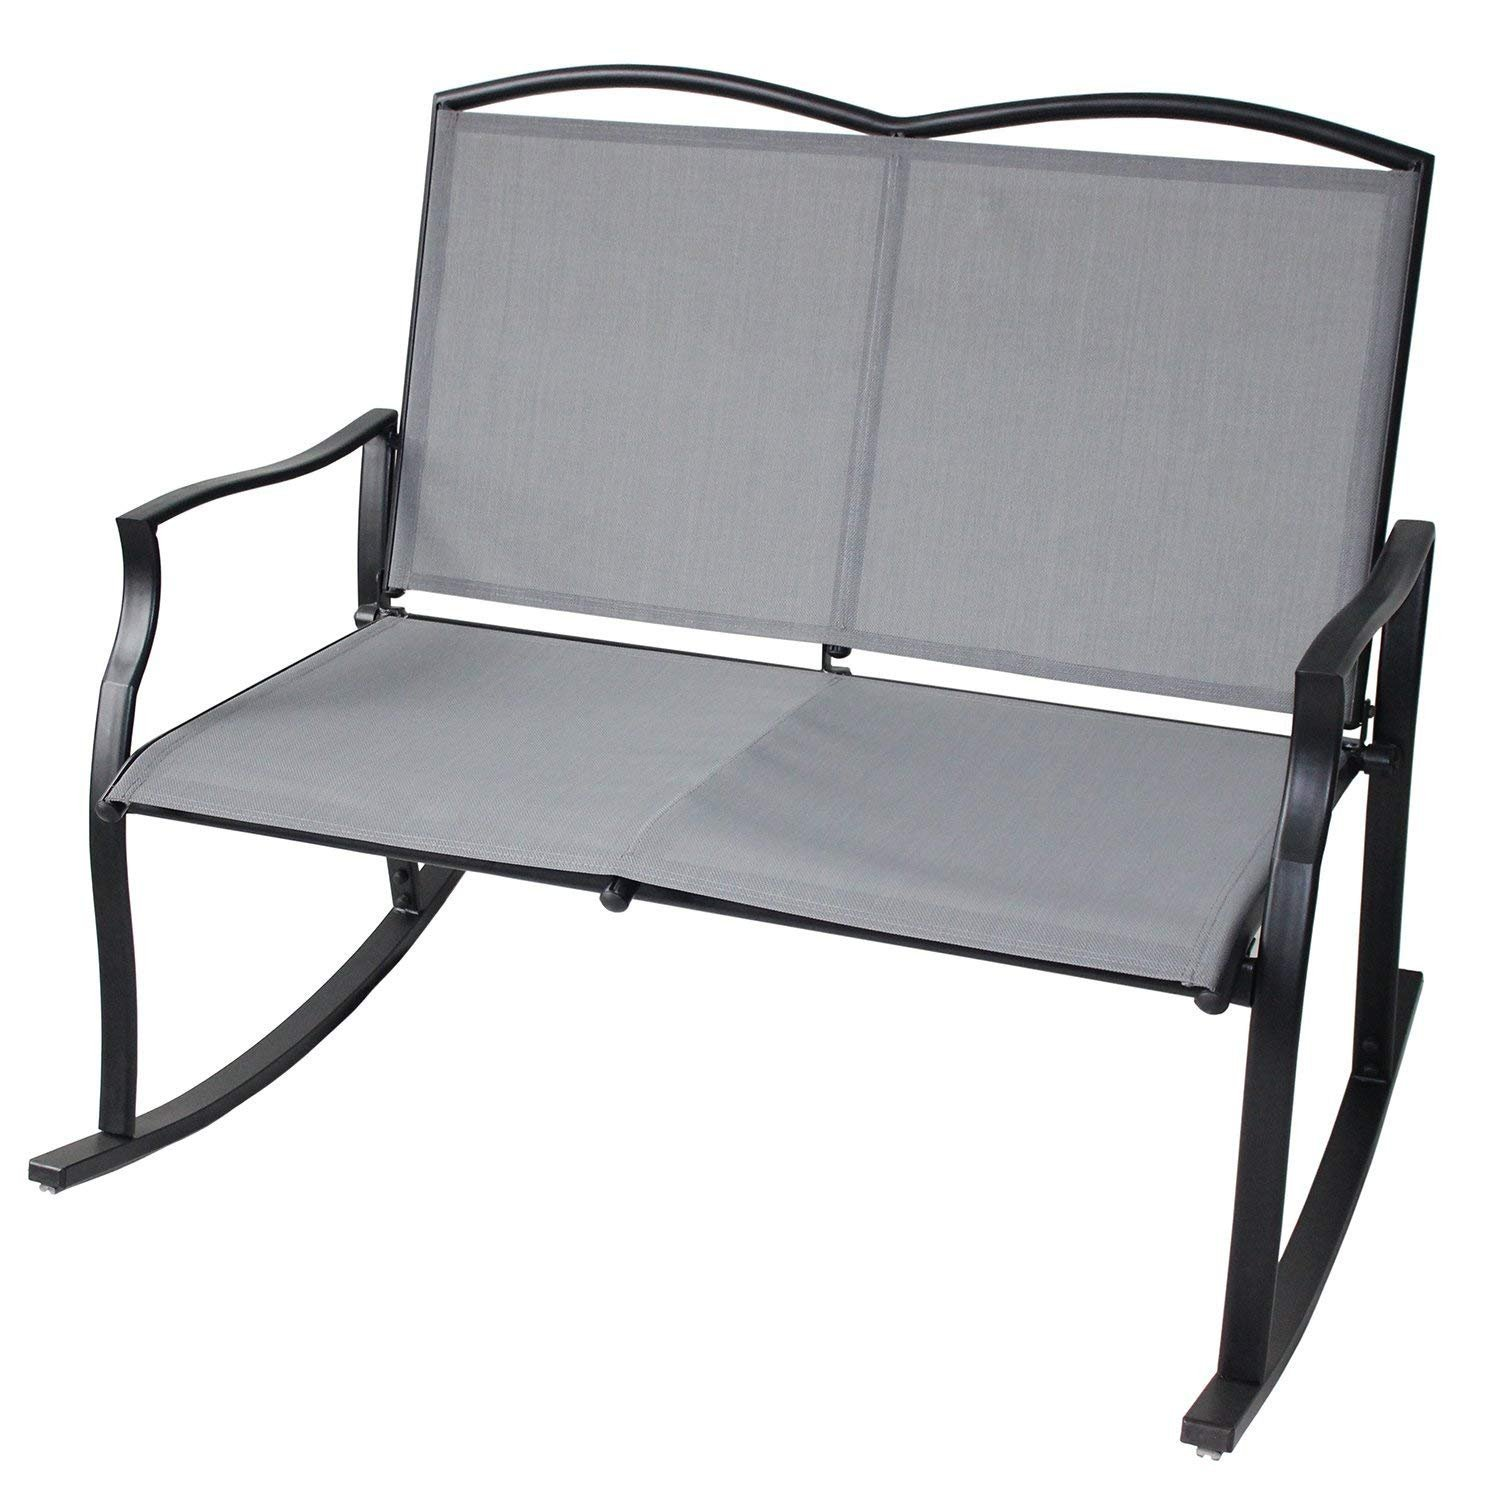 UNICOO - Patio Loveseat Bench, Garden Loveseat, Sling Rocking Chair, Glider Swing Rocking Chair with Steel Frame for 2 Persons